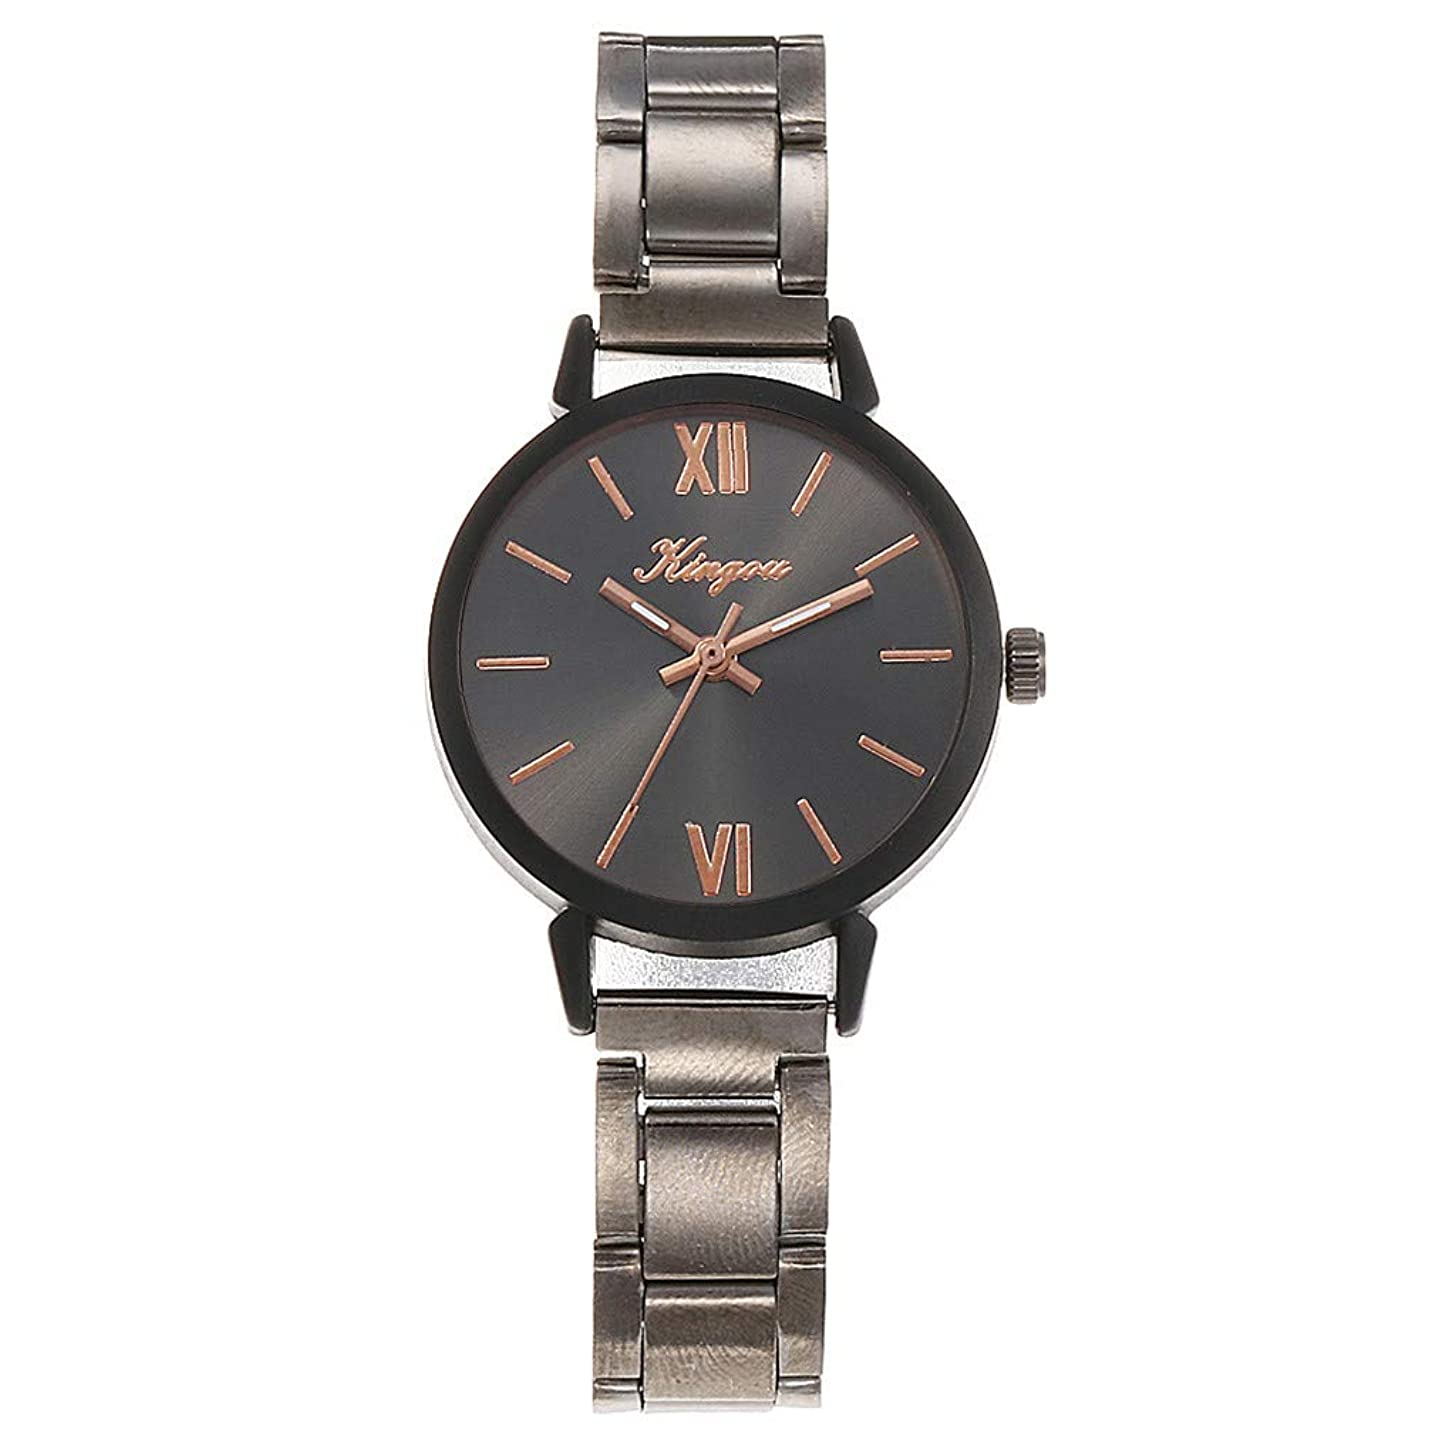 LUCAMORE Hot Sale Classic Stainless Steel Quartz Women Wrist Watch with Stainless Steel Bracelet